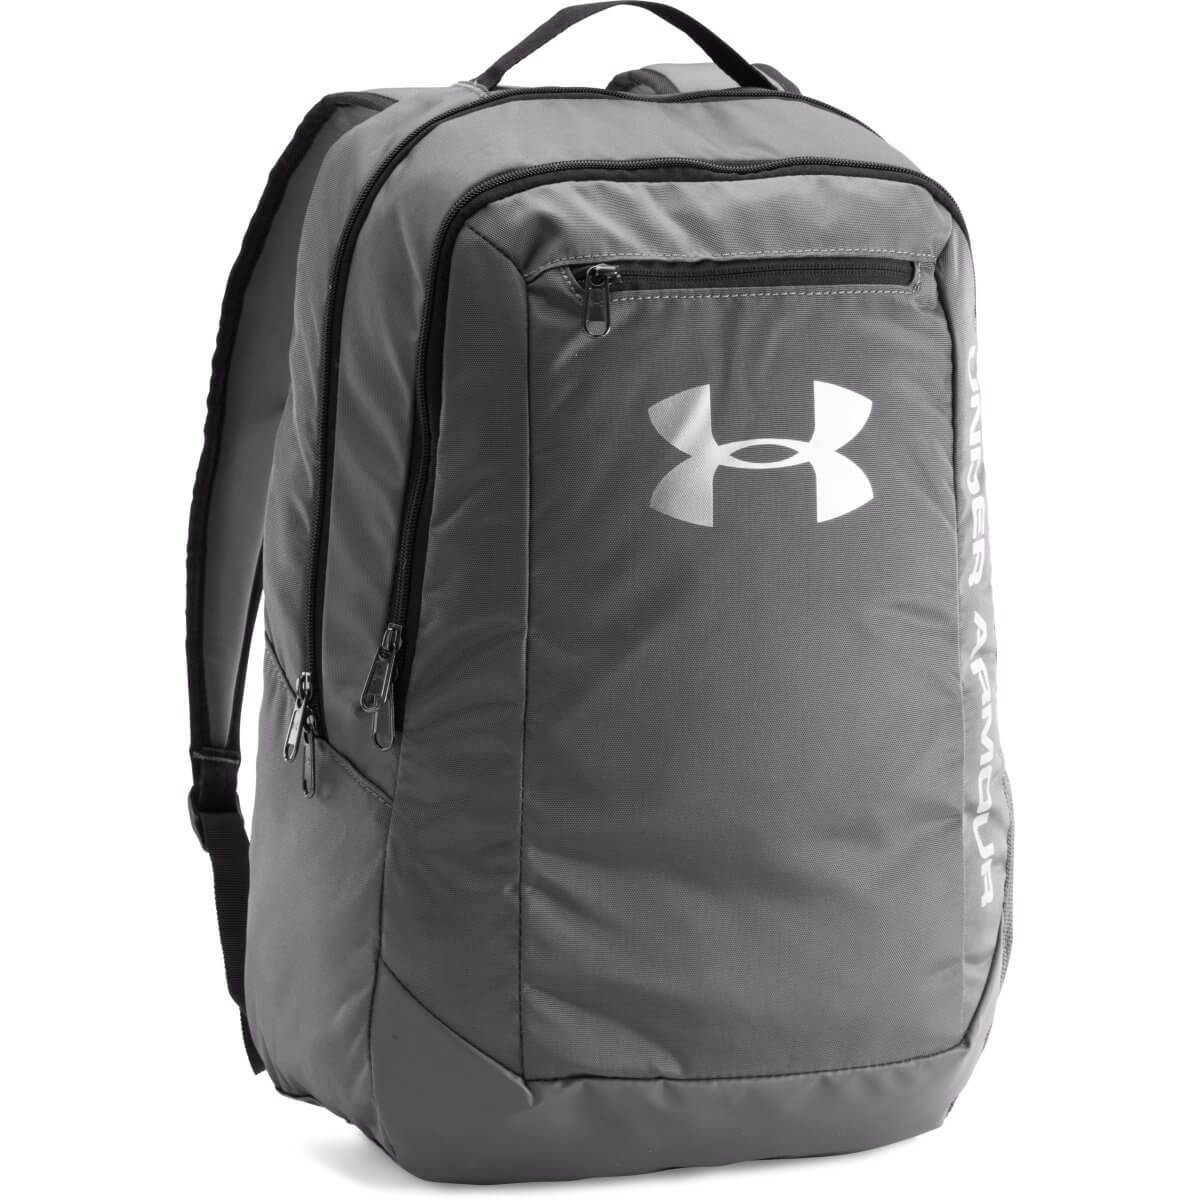 Batoh Hustle Backpack LDWR Grey - Under Armour